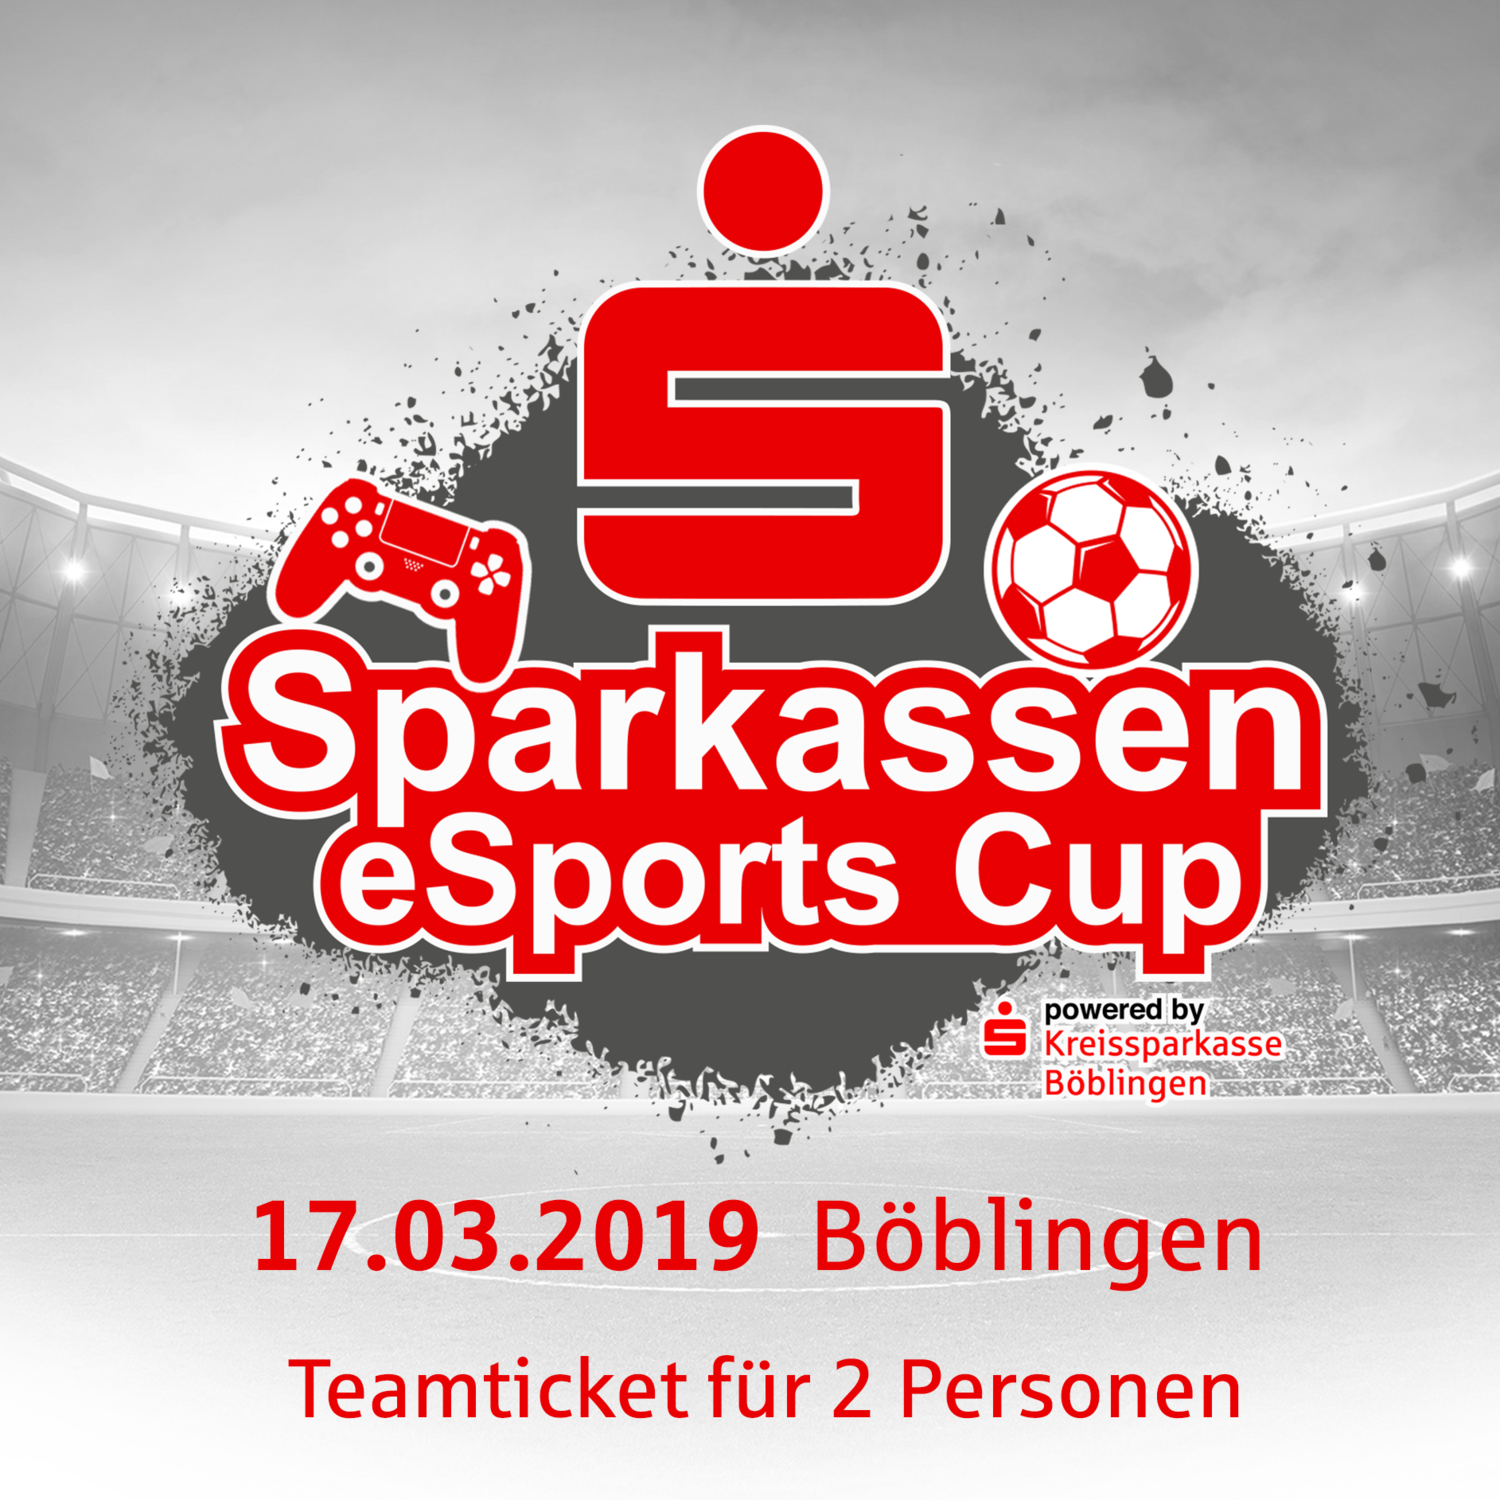 Sparkassen eSports Cup powered by Kreissparkasse Böblingen  // 17.03.2019 // 2vs2